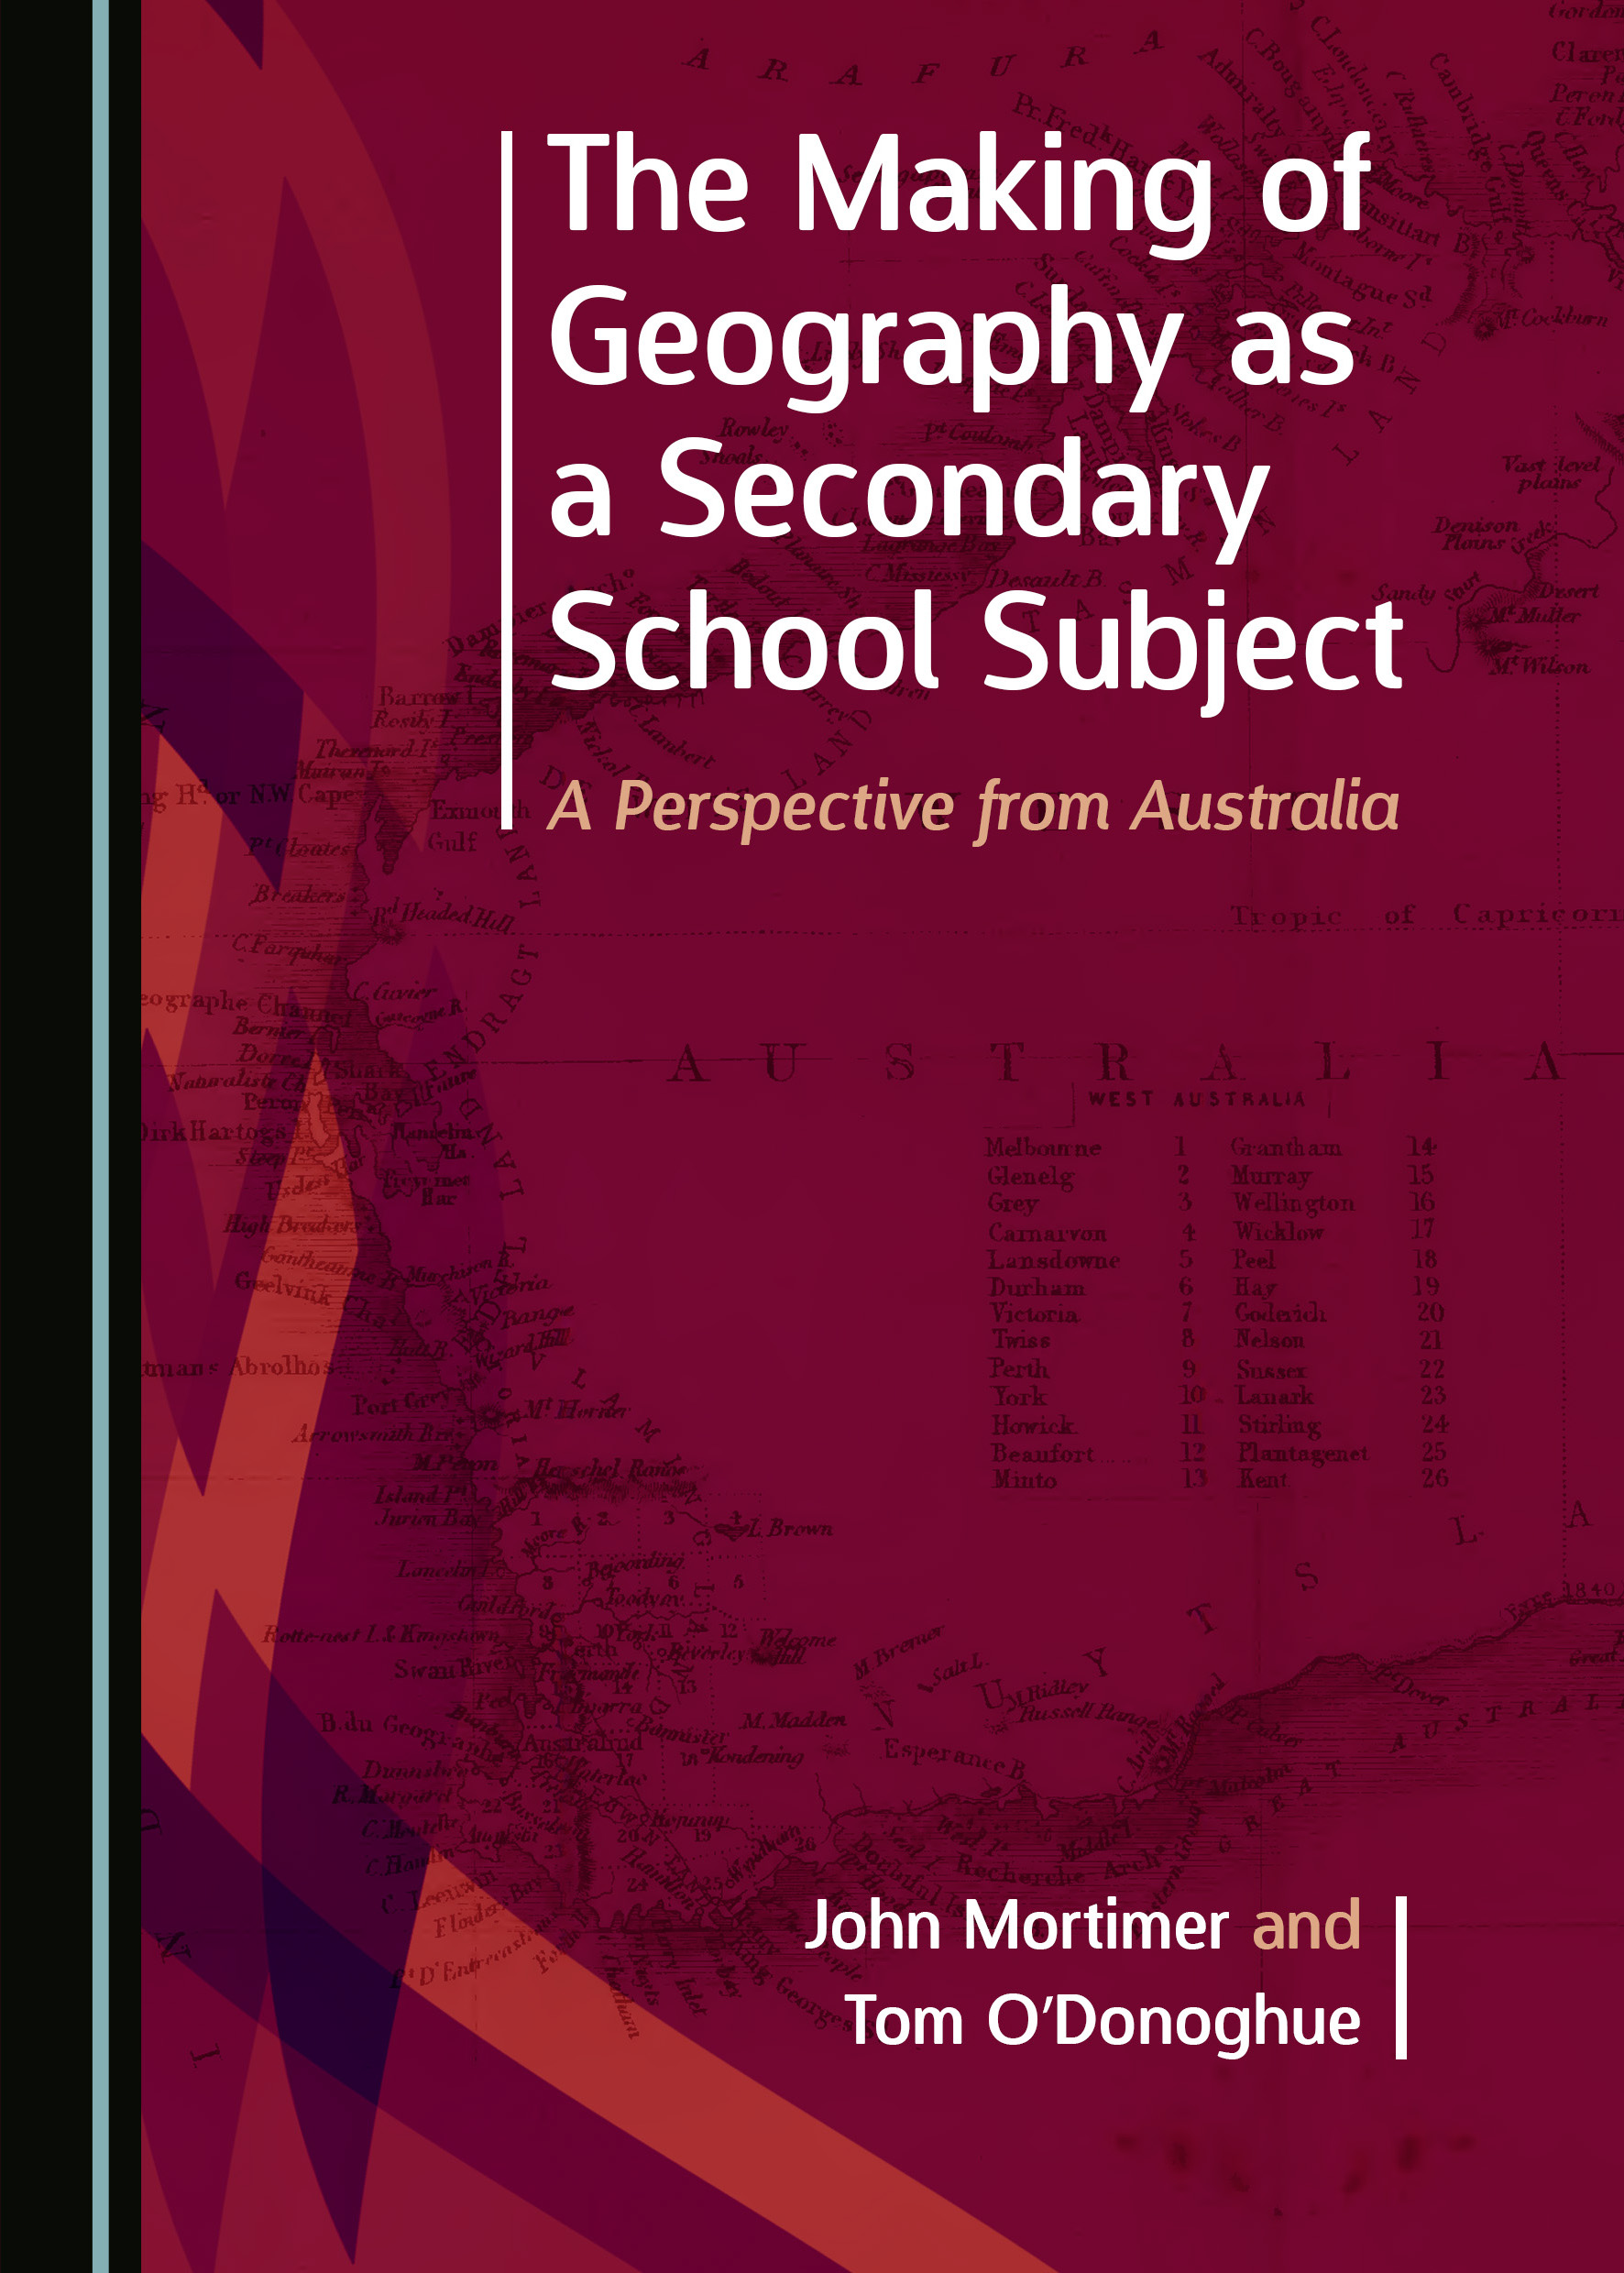 The Making of Geography as a Secondary School Subject: A Perspective from Australia